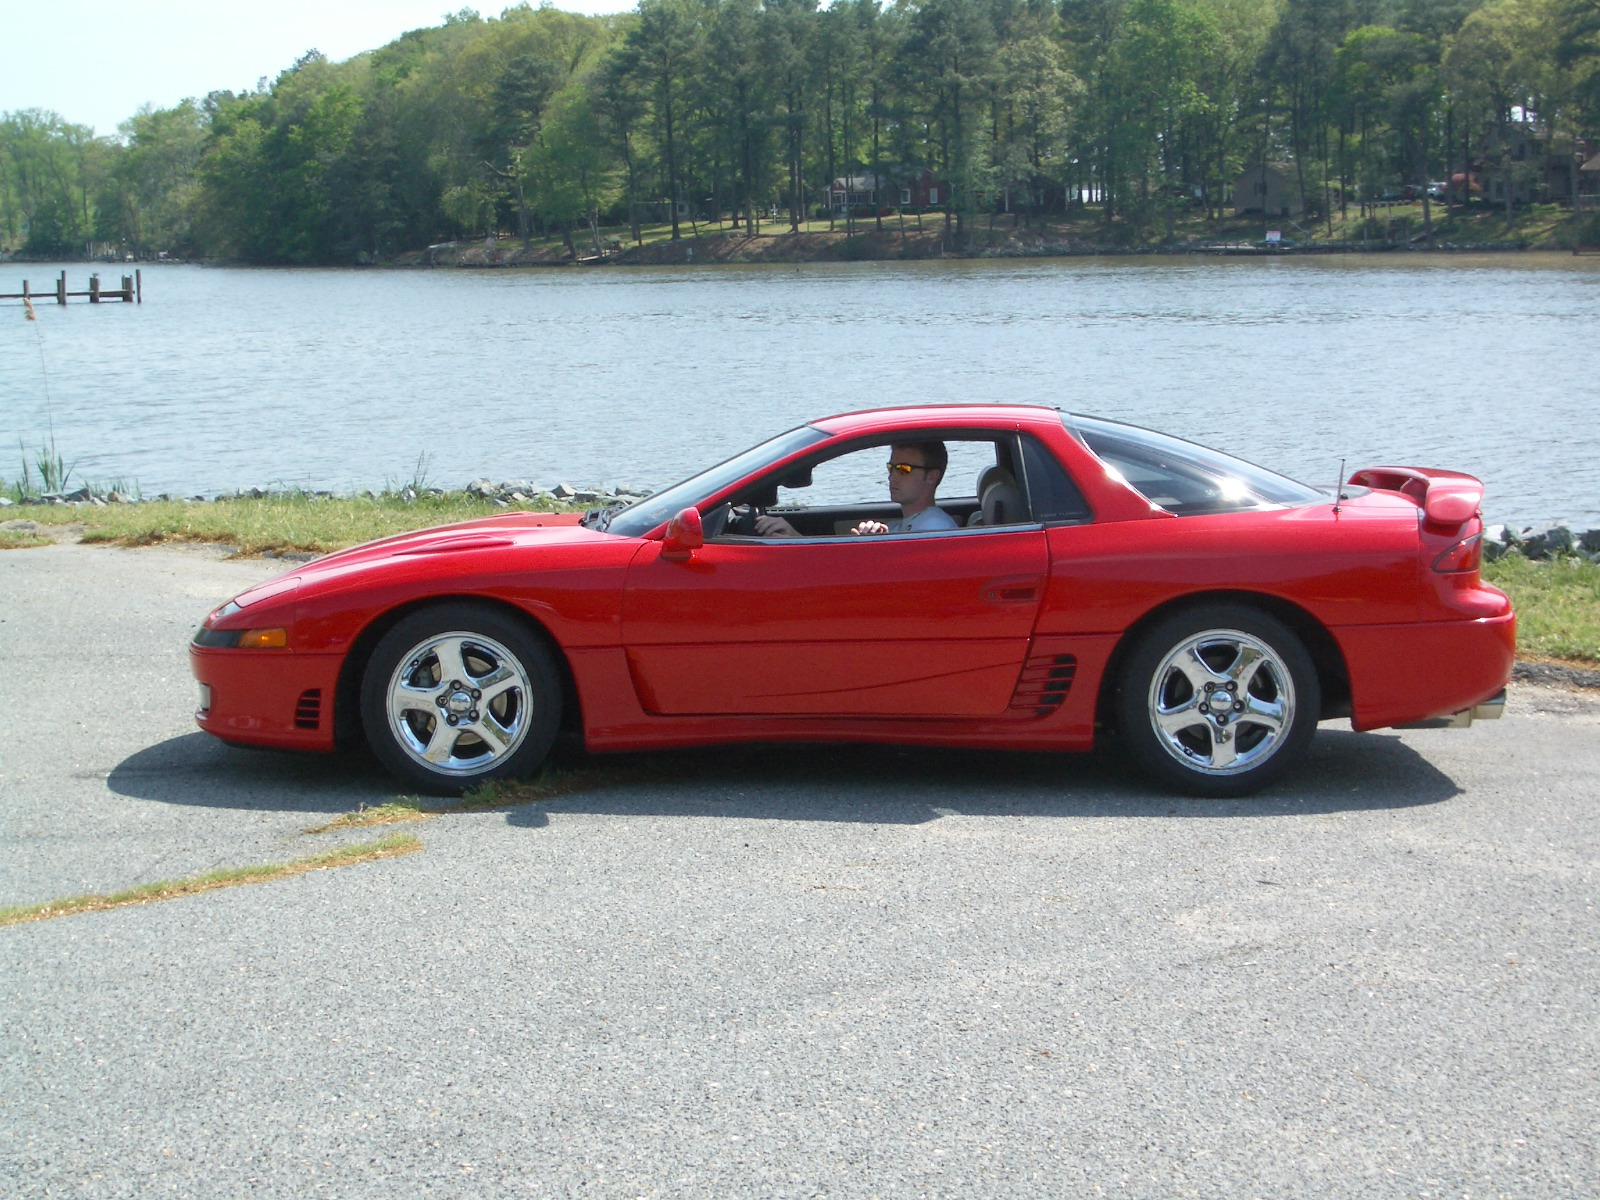 1993 Mitsubishi 3000GT VR4 Pictures, Mods, Upgrades, Wallpaper - DragTimes.com